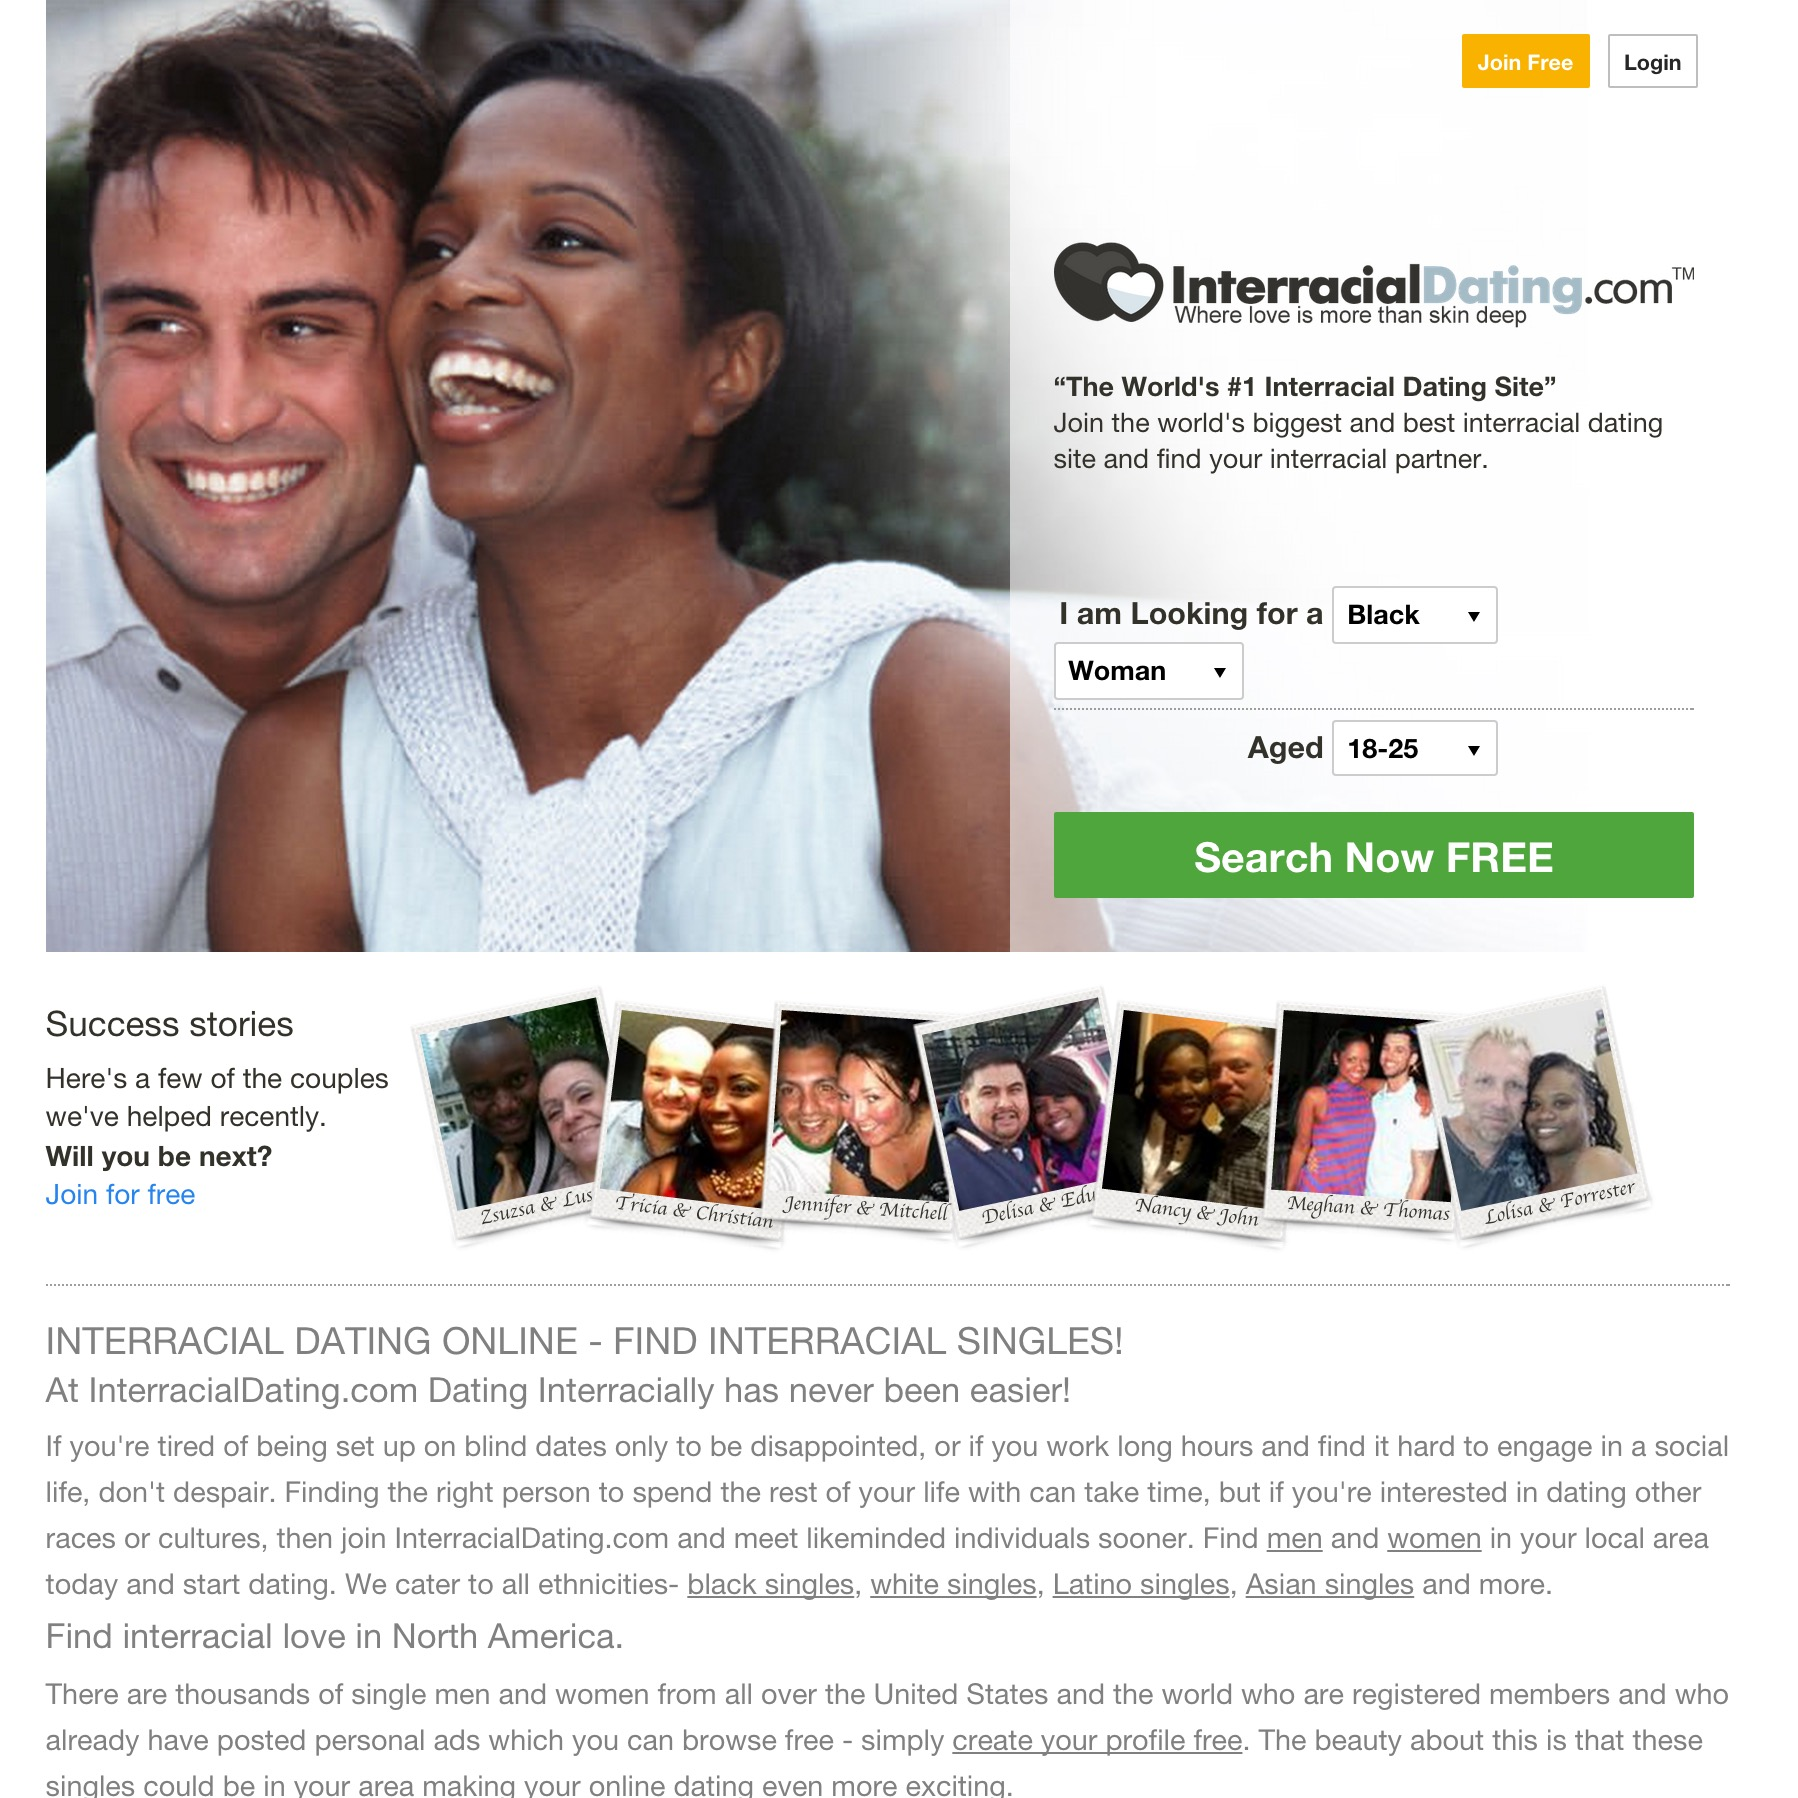 interracial dating sites uk What do you all think are the attitudes towards interracial dating in the uk   here is a site which features asian men with european women:.